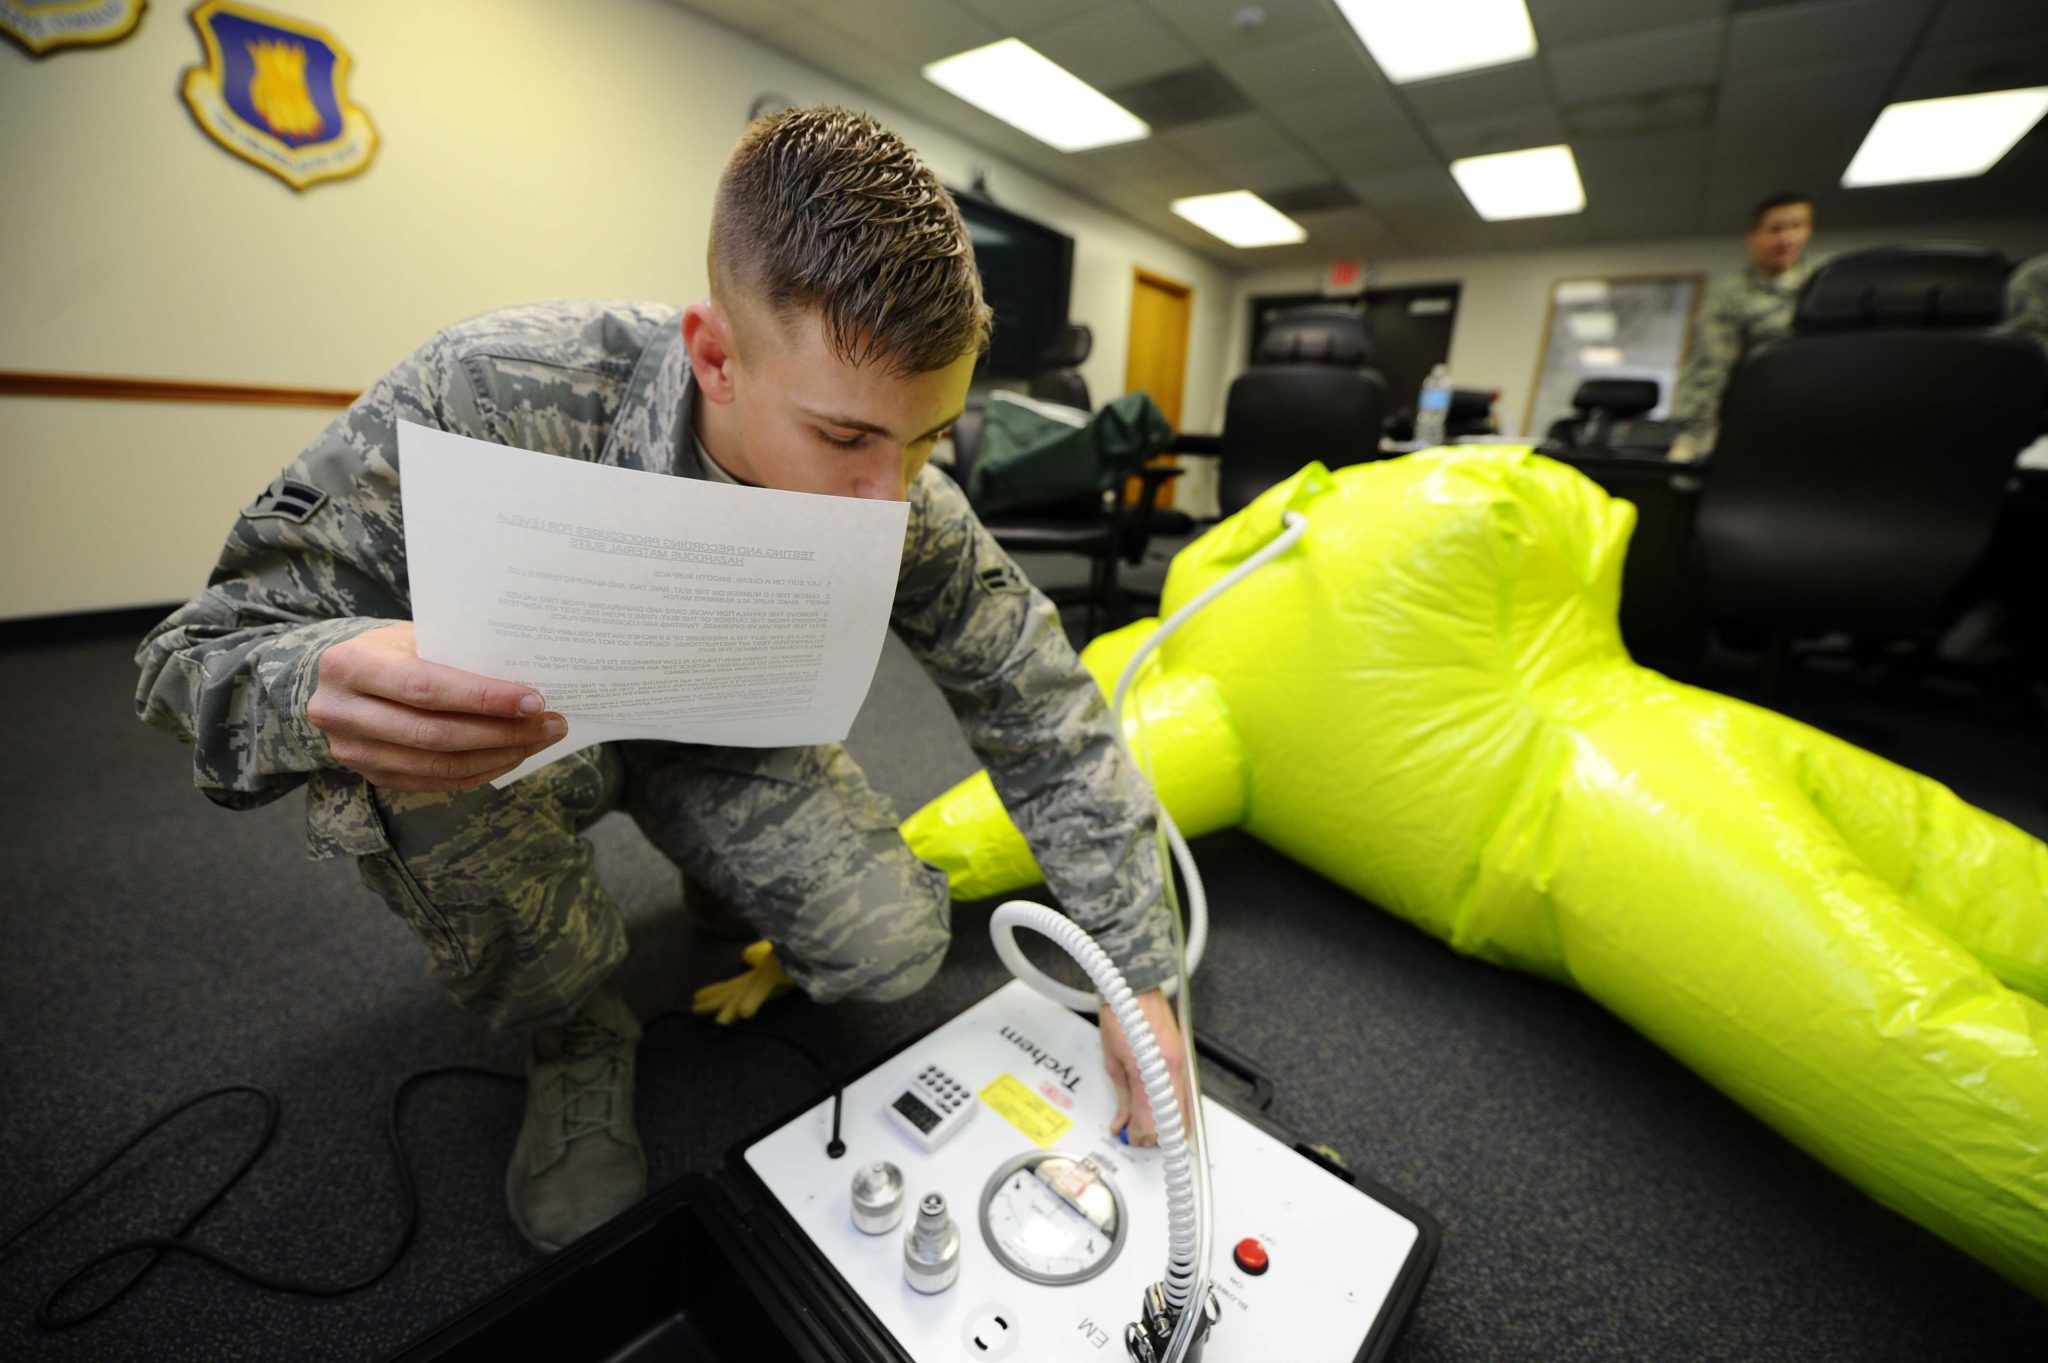 A member of the 22nd Civil Engineer Squadron checks equipment as part of their emergency management preparatory work.